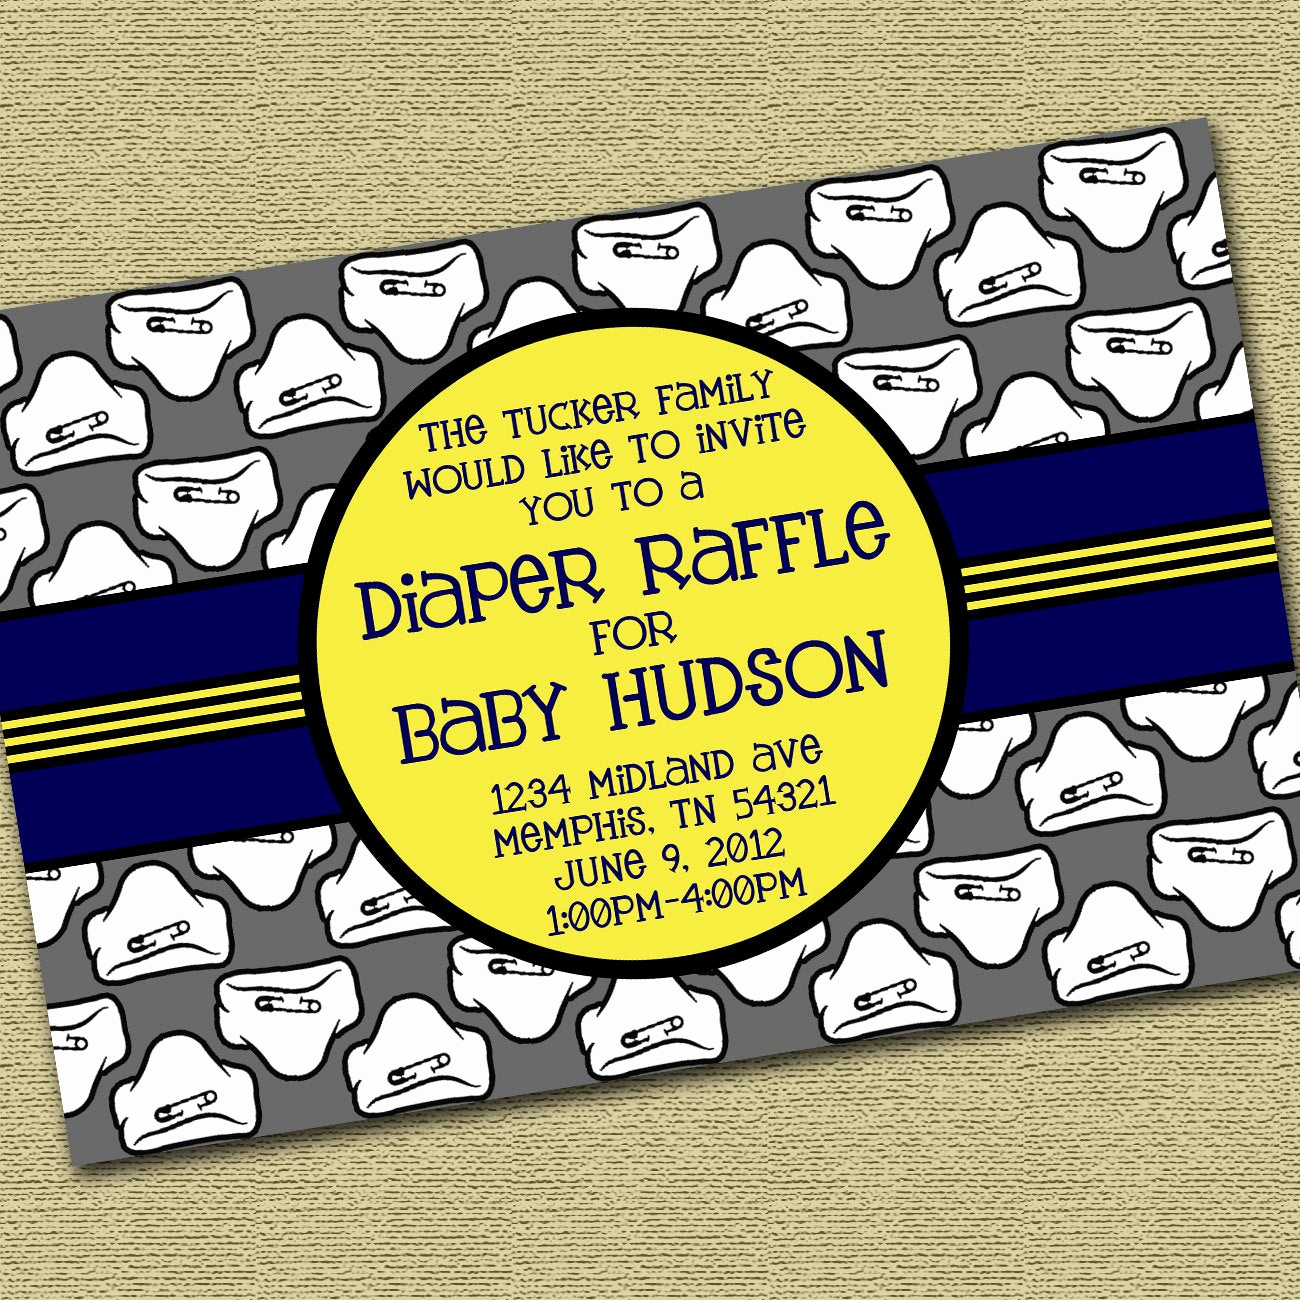 Diaper Raffle Wording On Invitation Luxury Diaper Raffle Baby Shower Invitation Package by 3casastudios